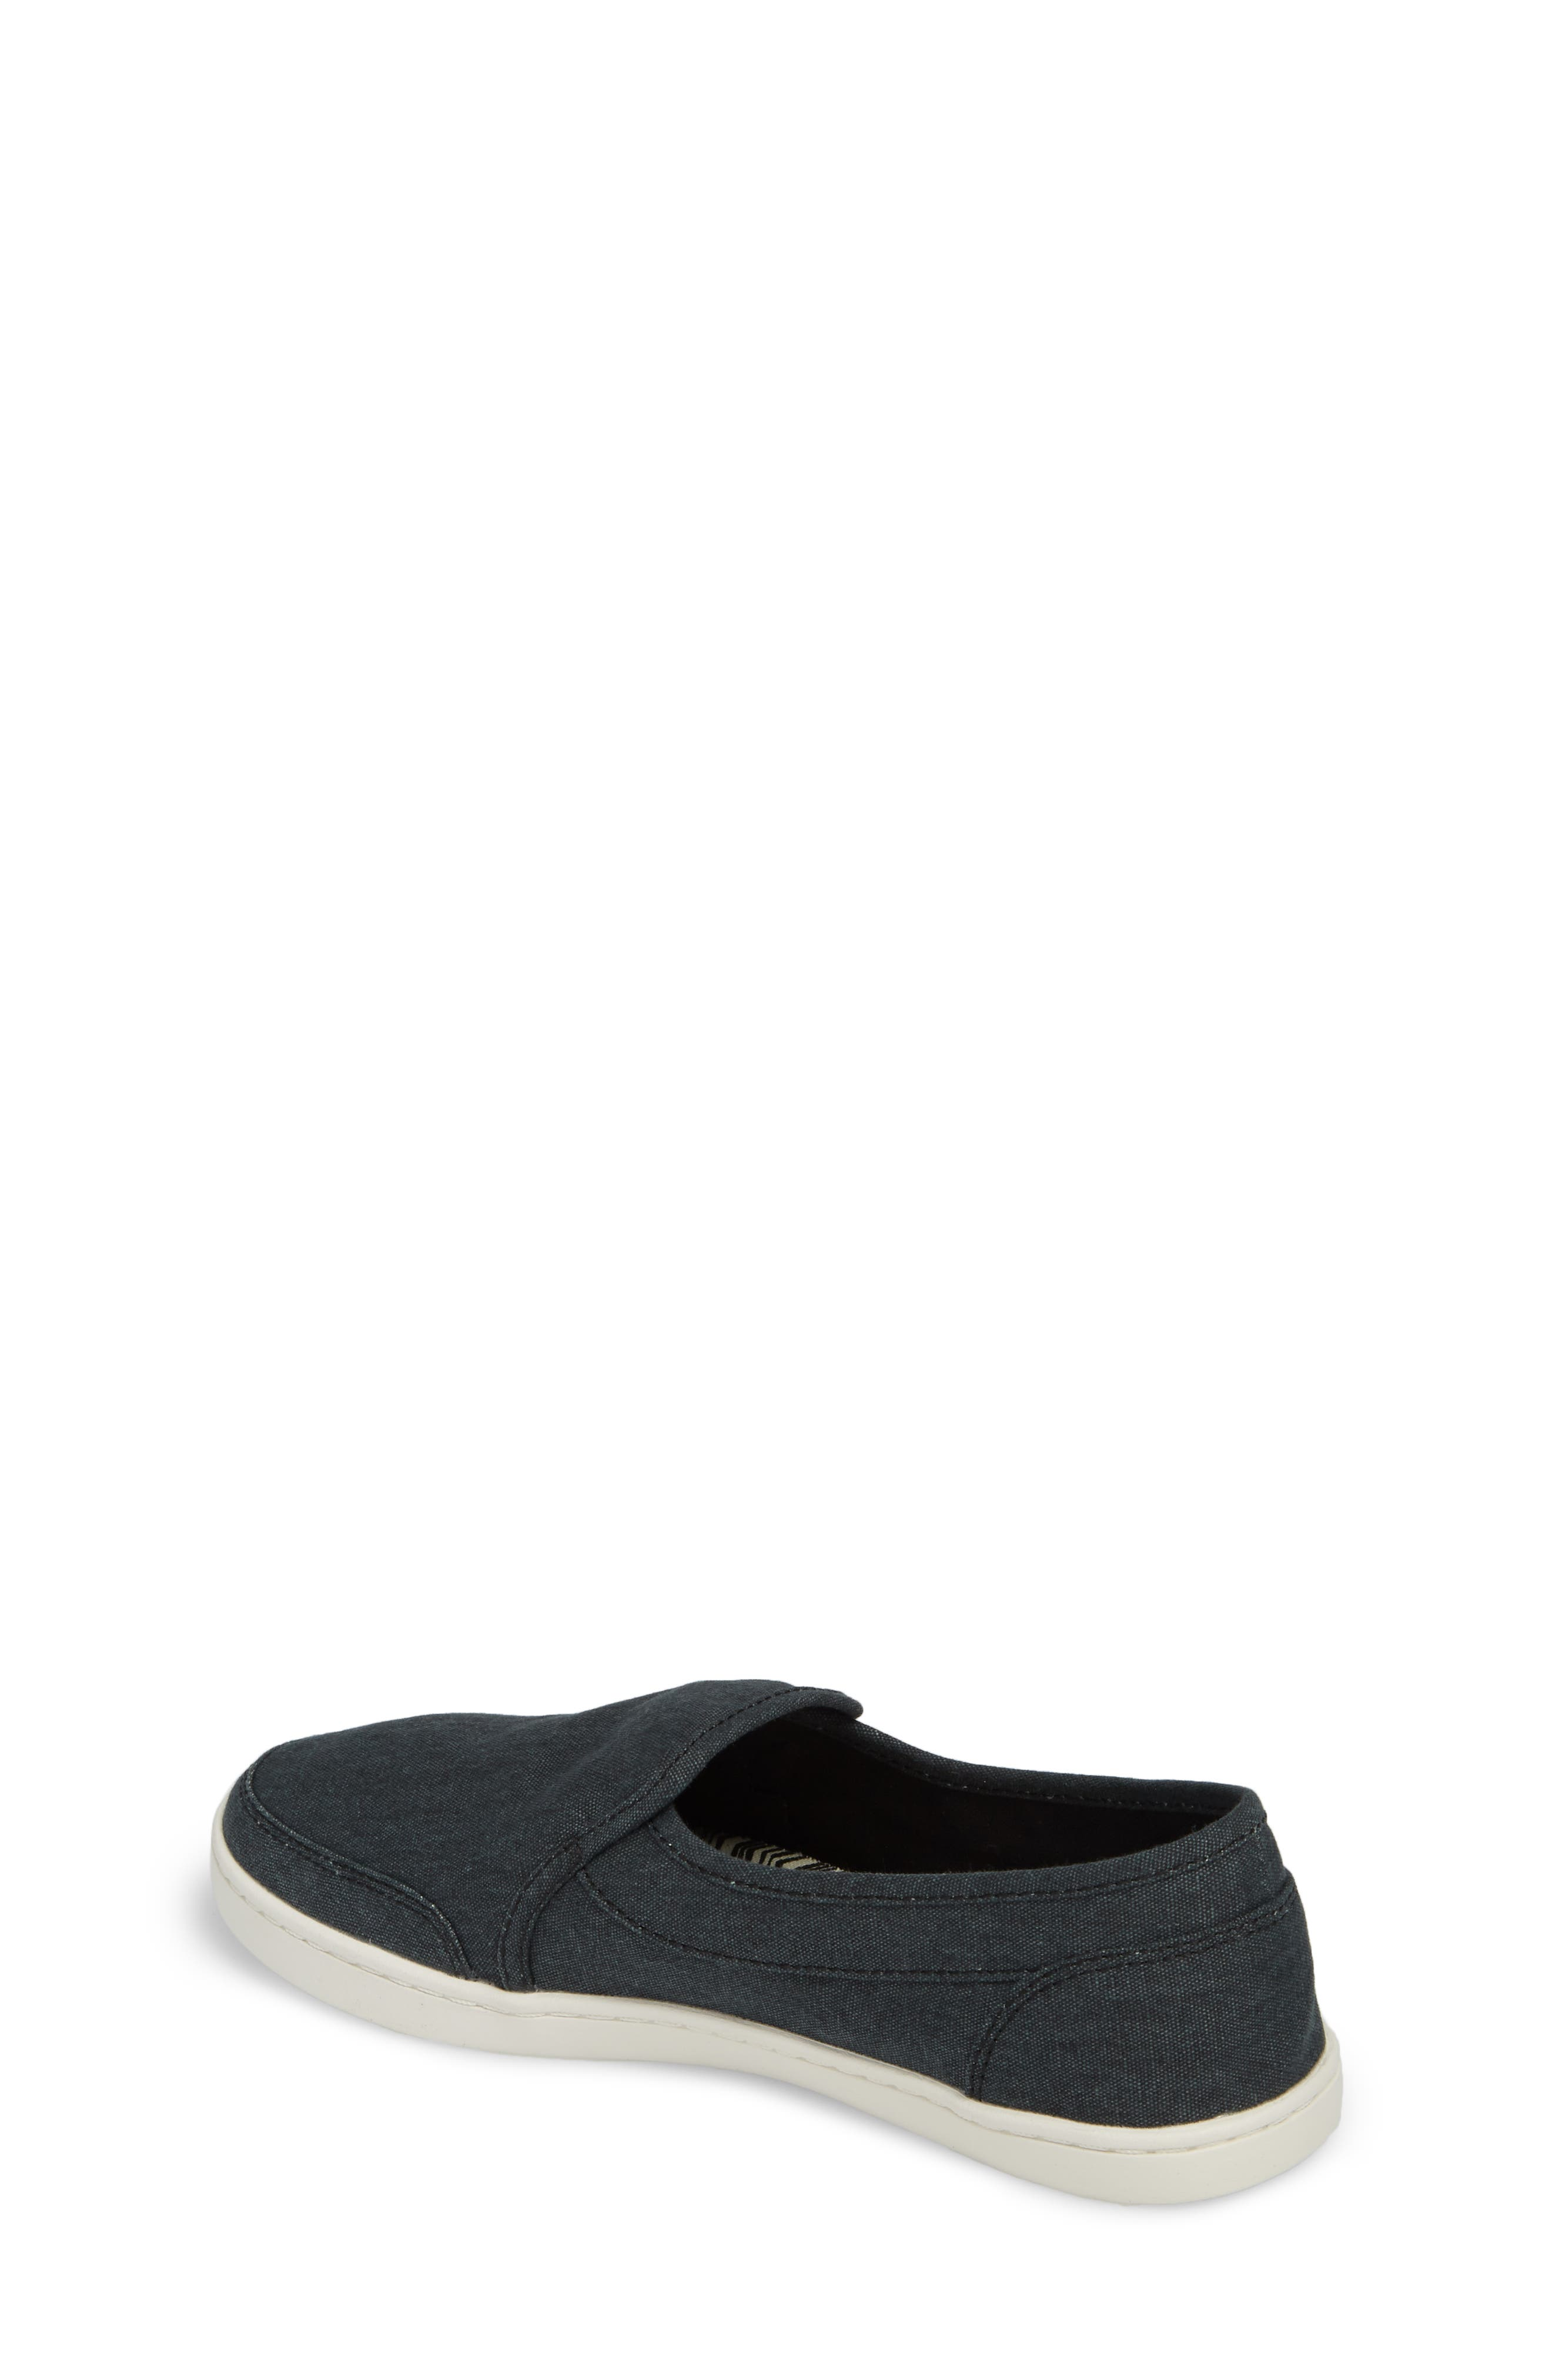 Pair O Dice Slip-On,                             Alternate thumbnail 2, color,                             WASHED BLACK